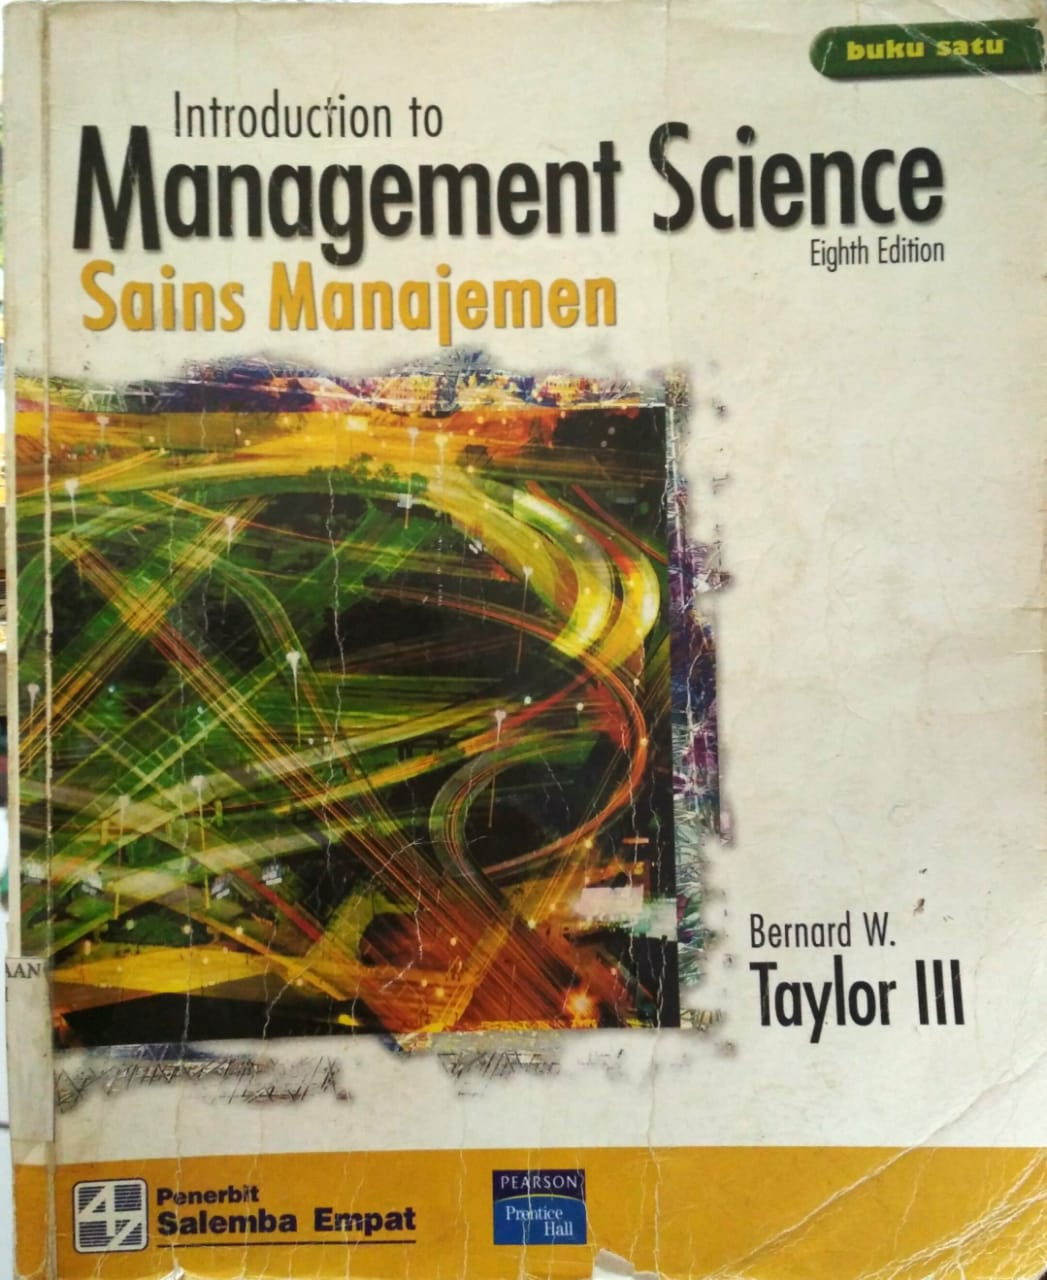 Introduction to Management Science buku 1